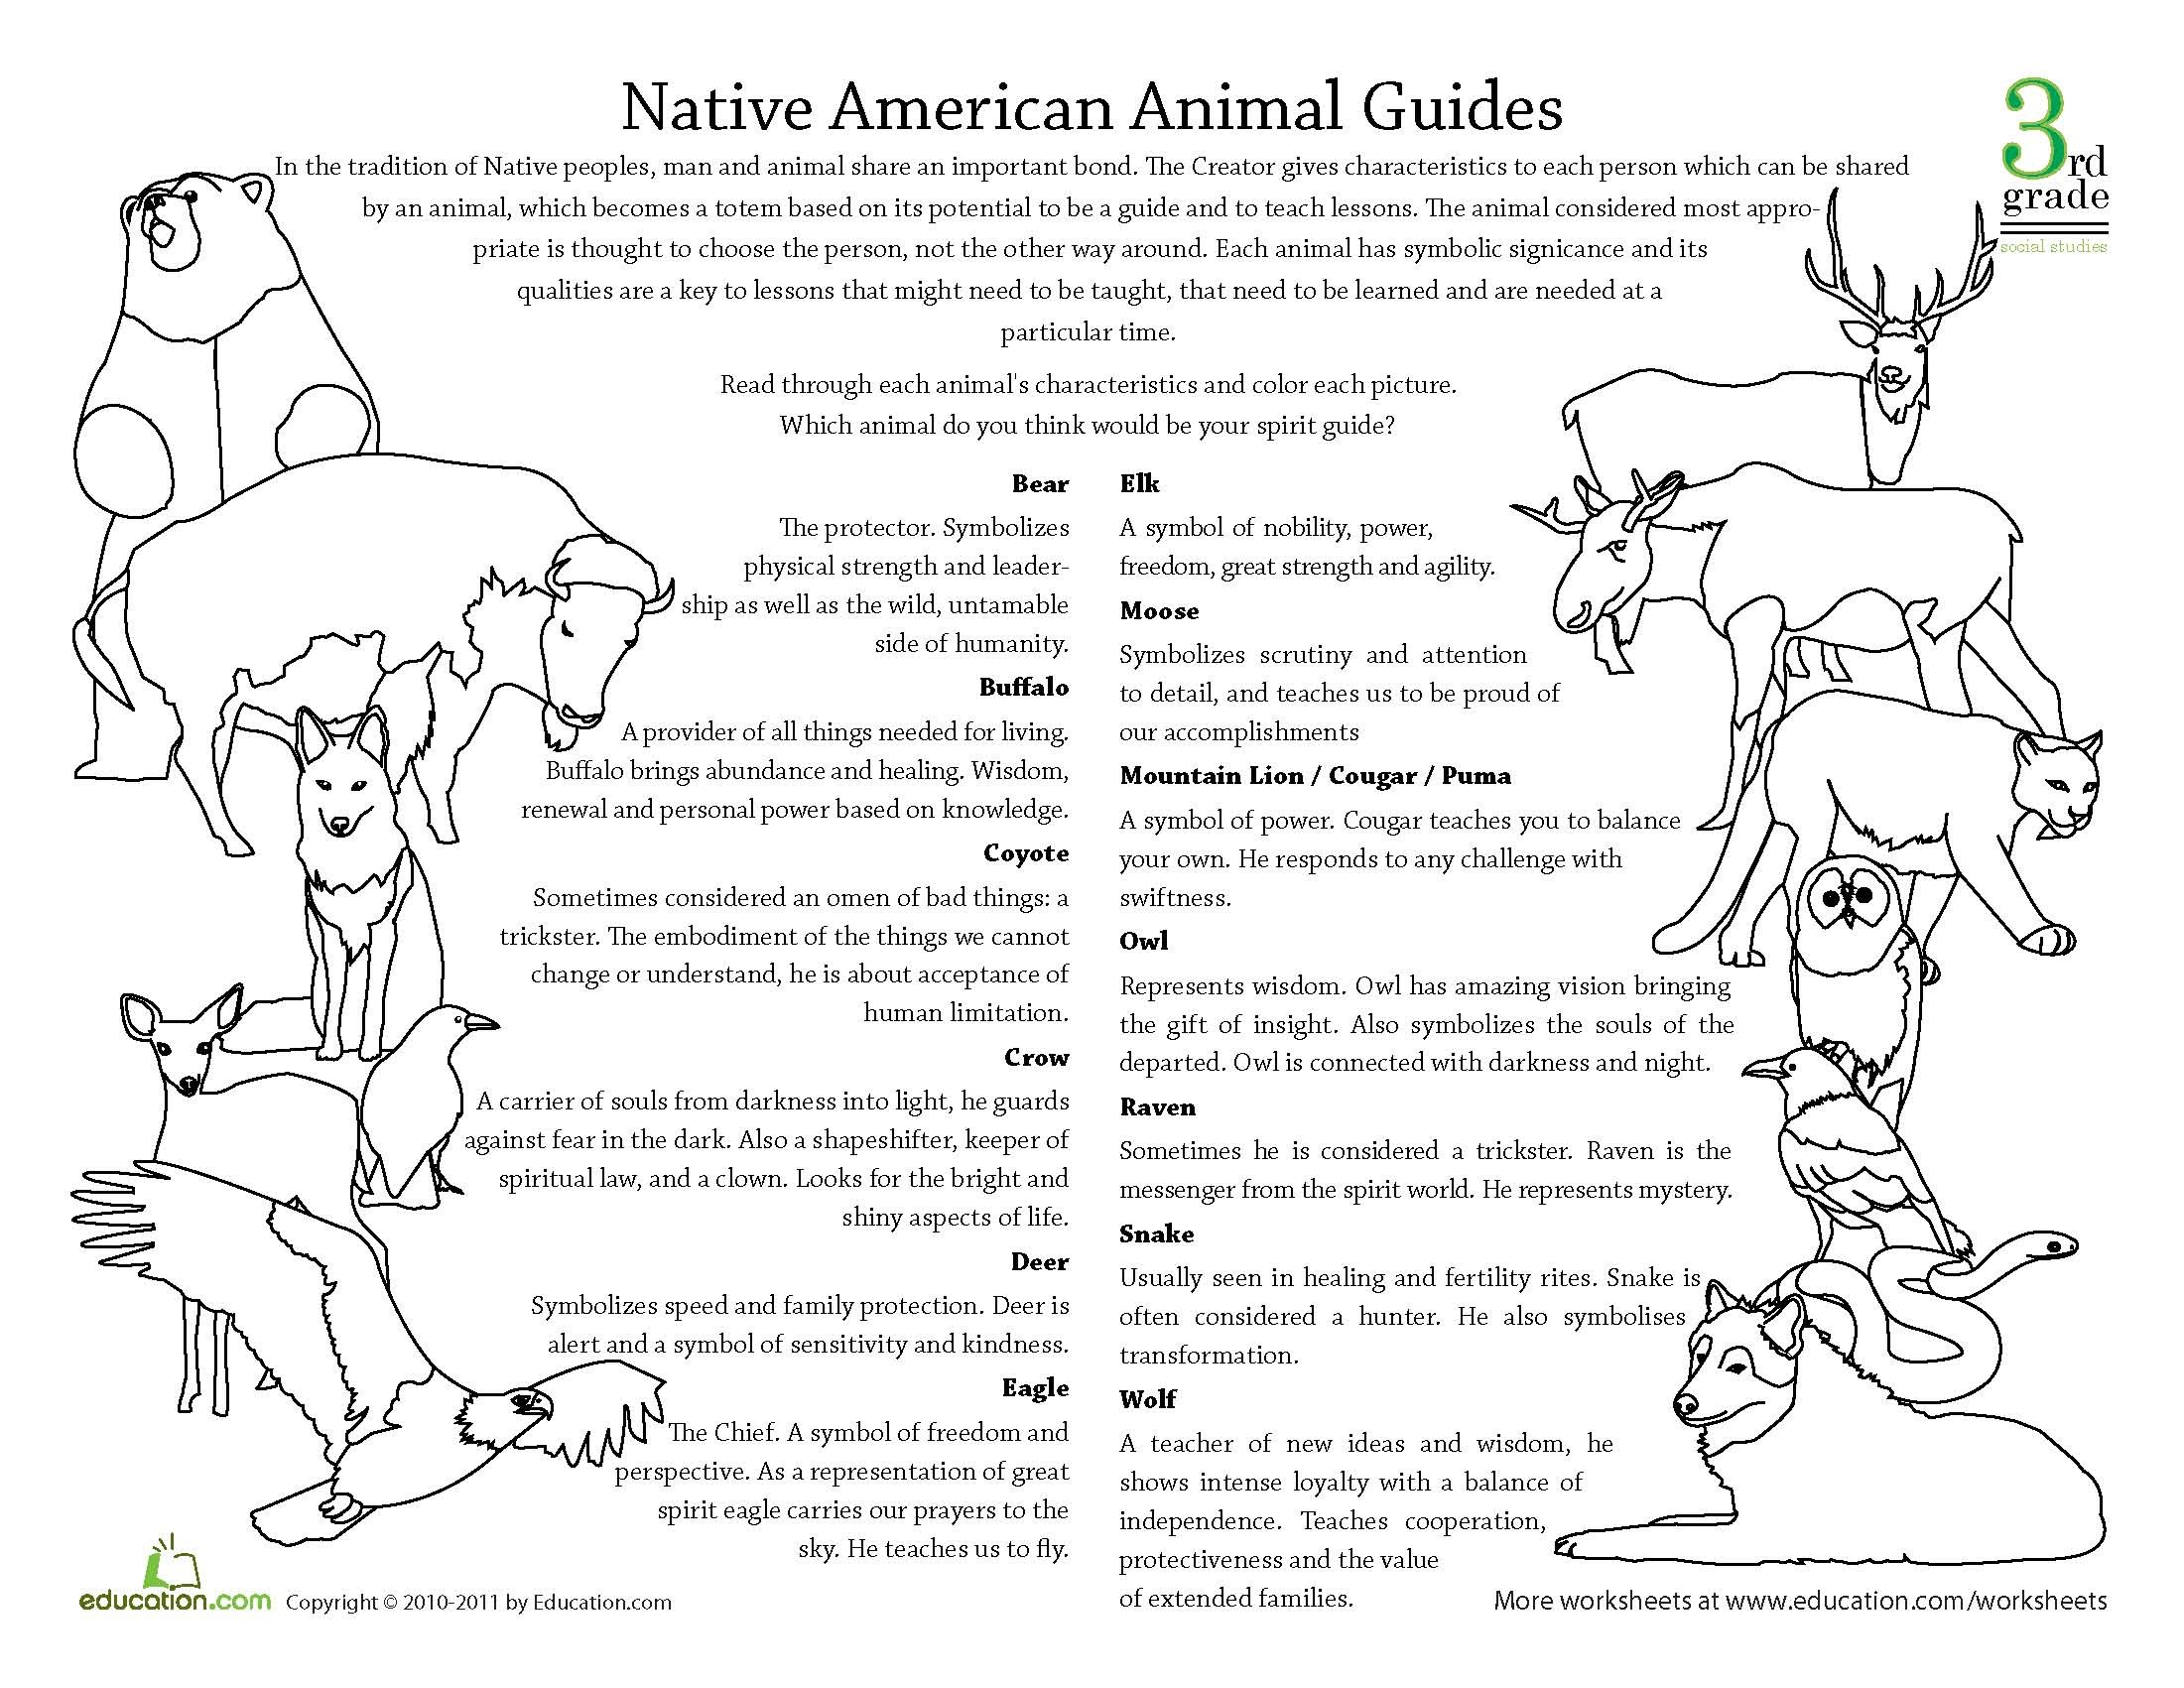 nativeamericananimalguides